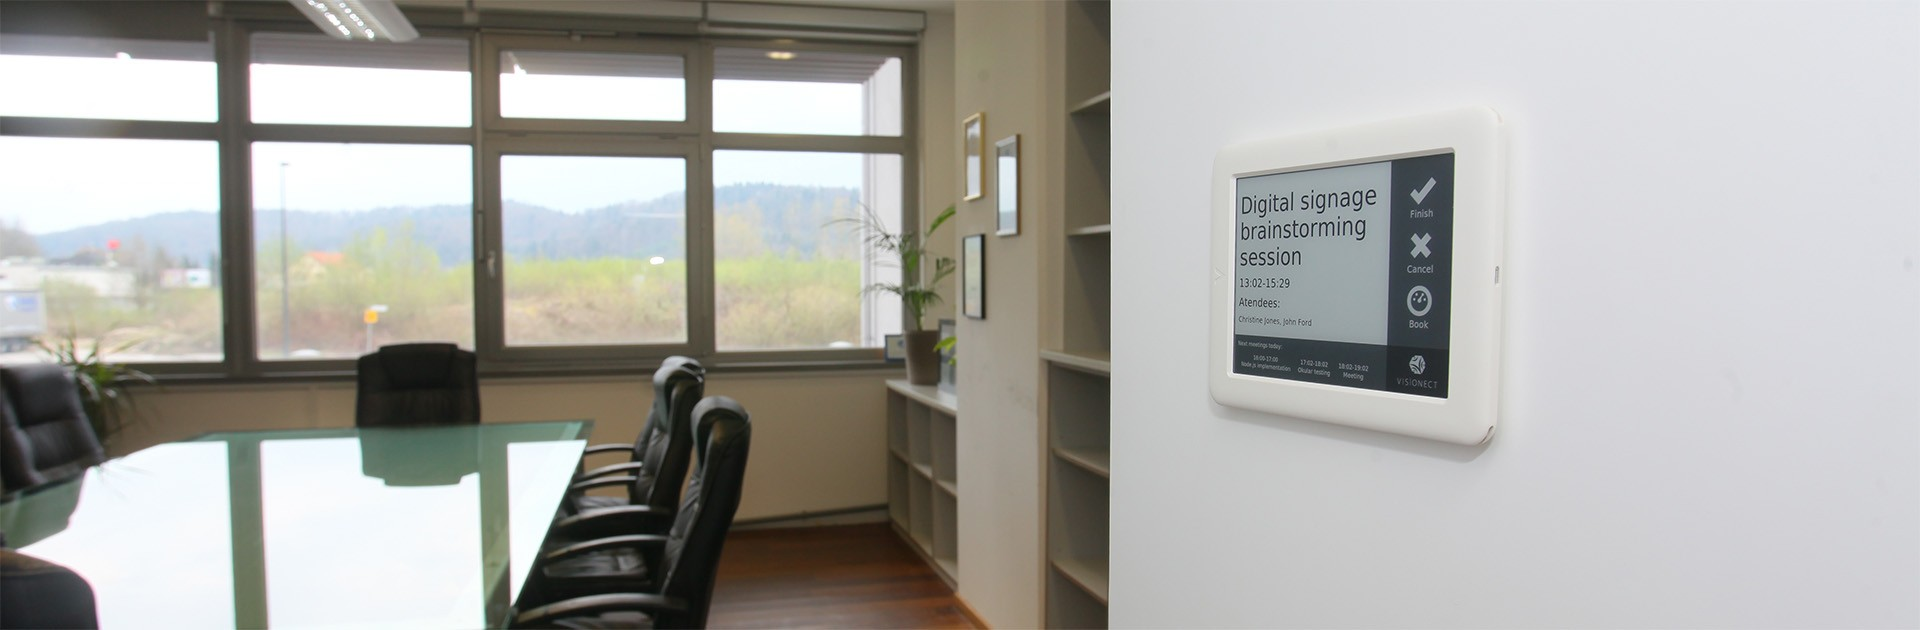 Digital Signage: How we built an e-paper room booking system